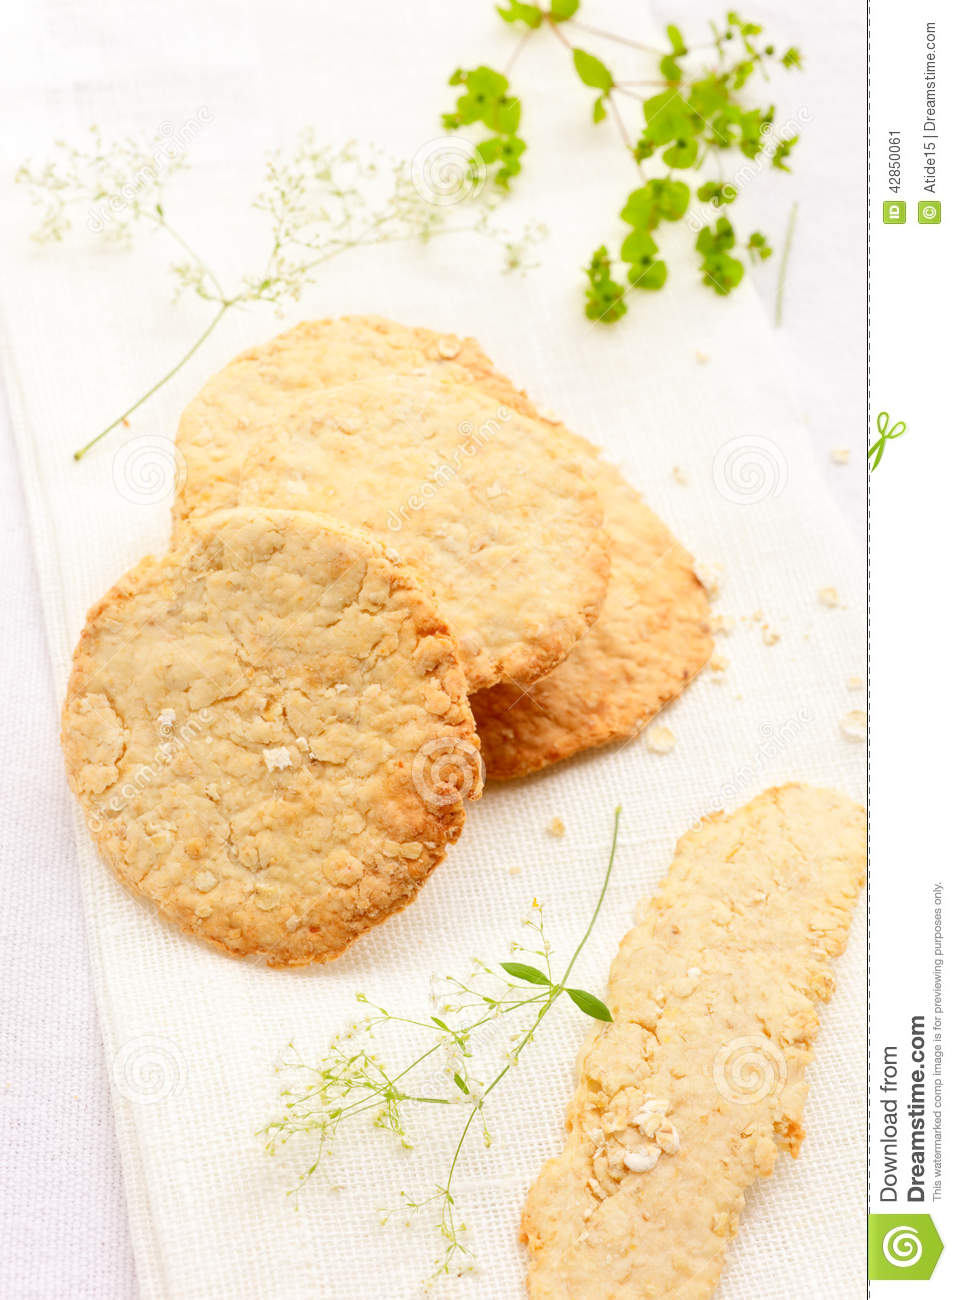 Oatmeal Crackers Stock Photo - Image: 42850061